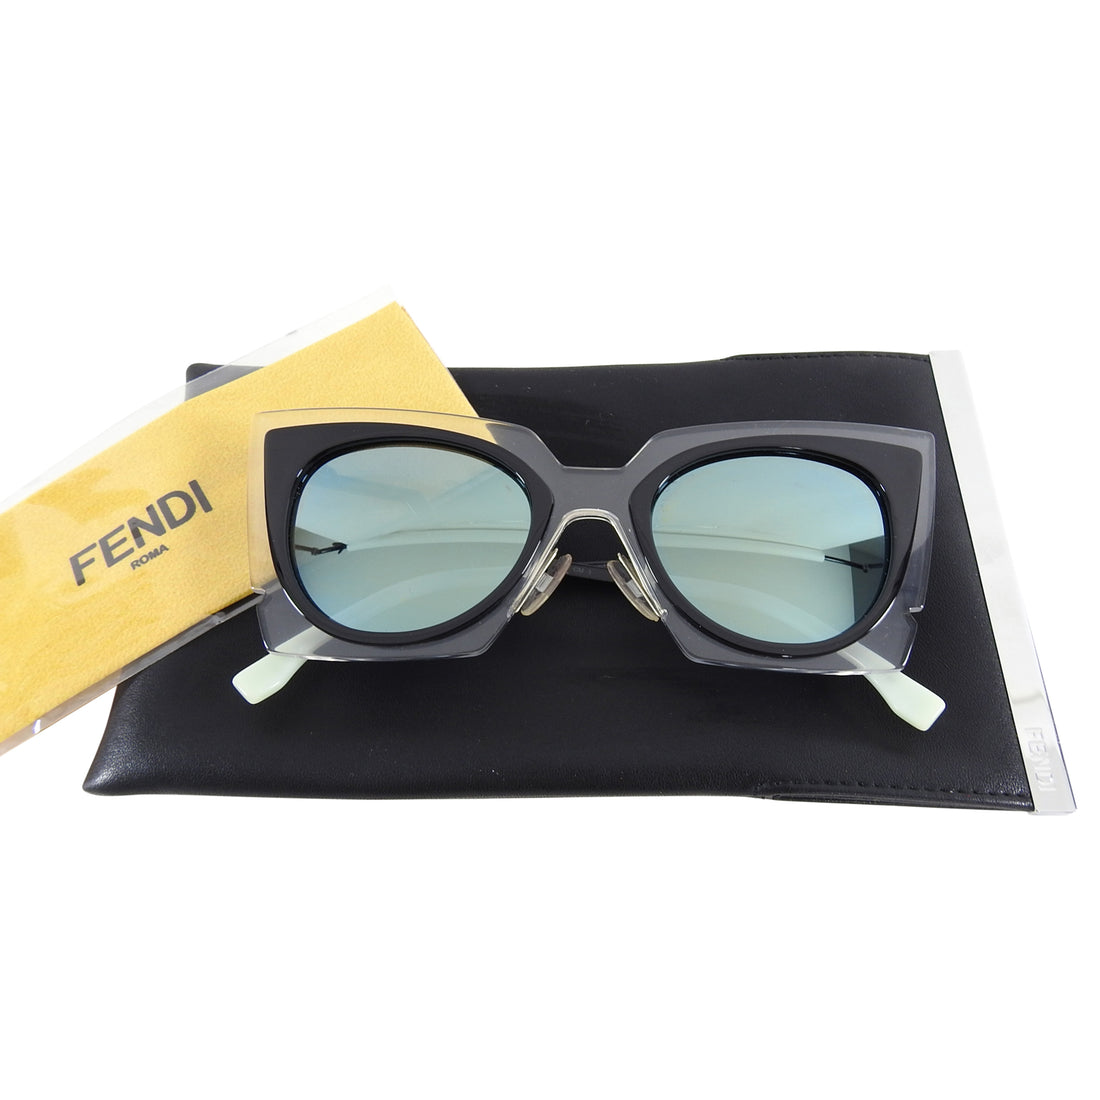 Fendi Spring 2015 Runway Clear Cateye Mirror Sunglasses FF0117